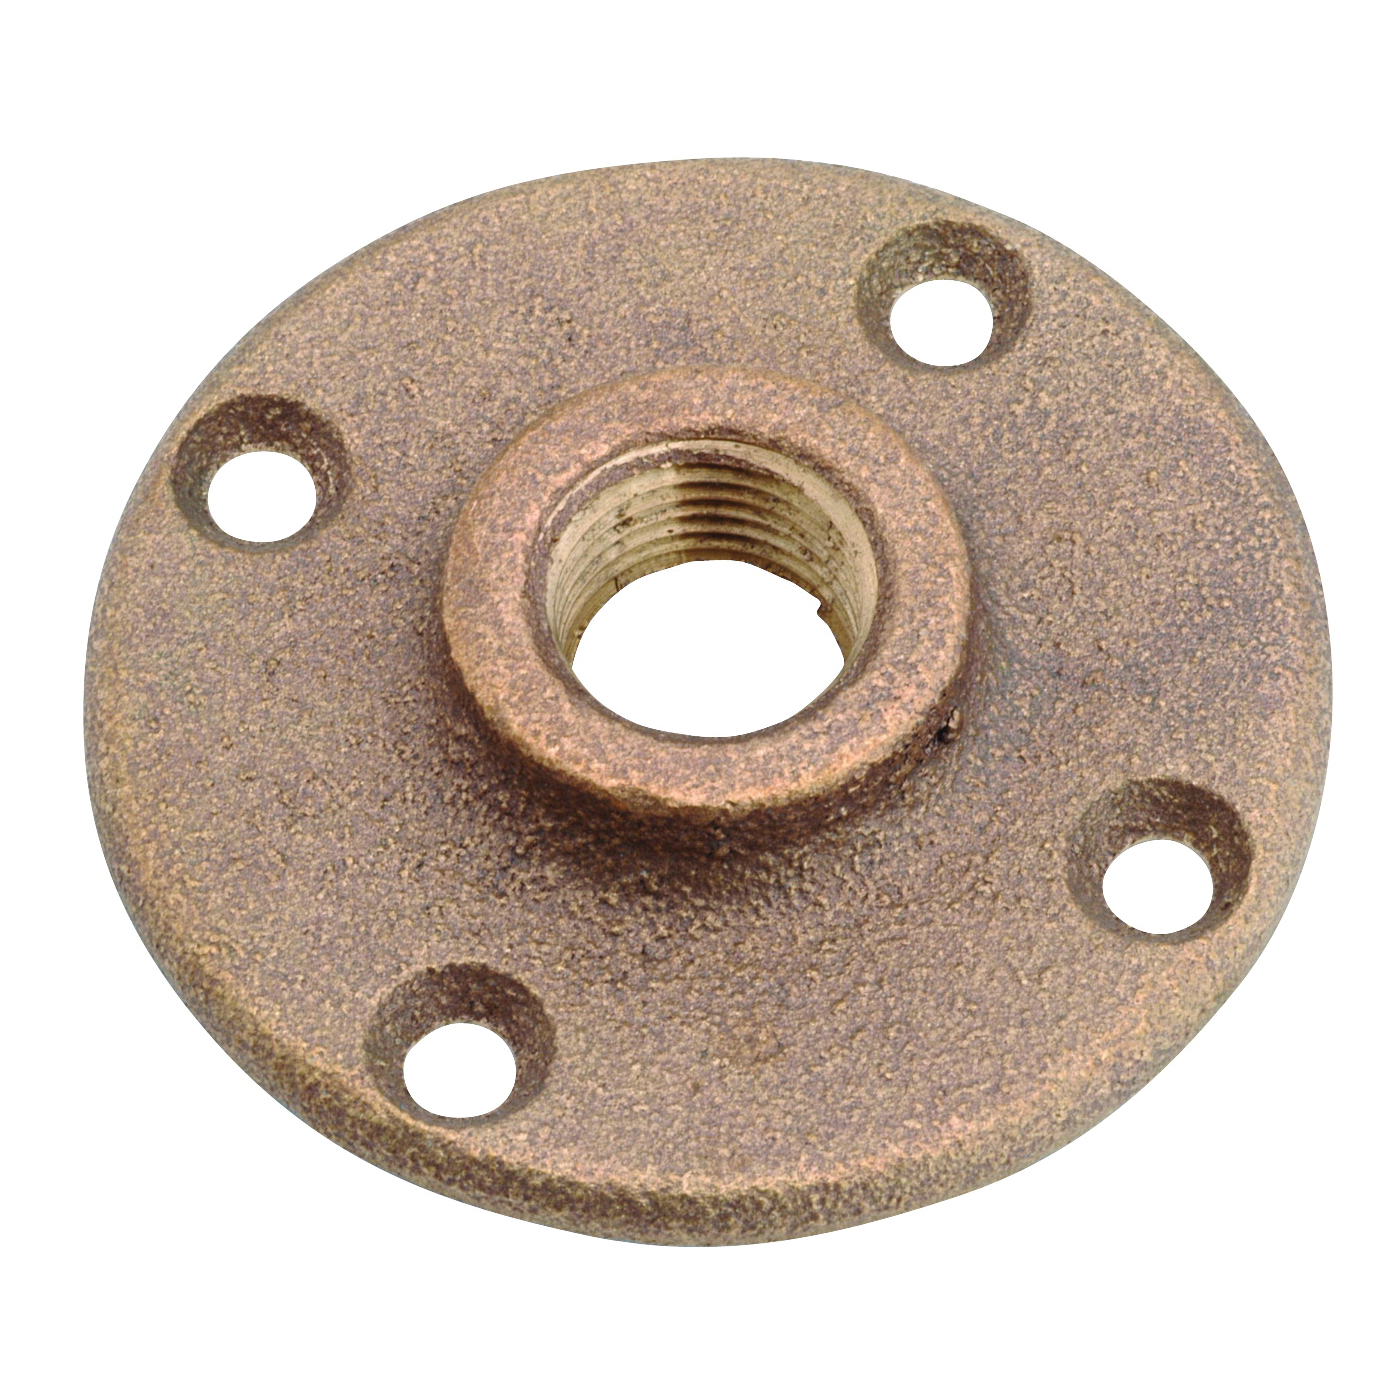 Picture of Anderson Metals 38151-12 Floor Flange, 3/4 in, 4-Bolt Hole, Brass